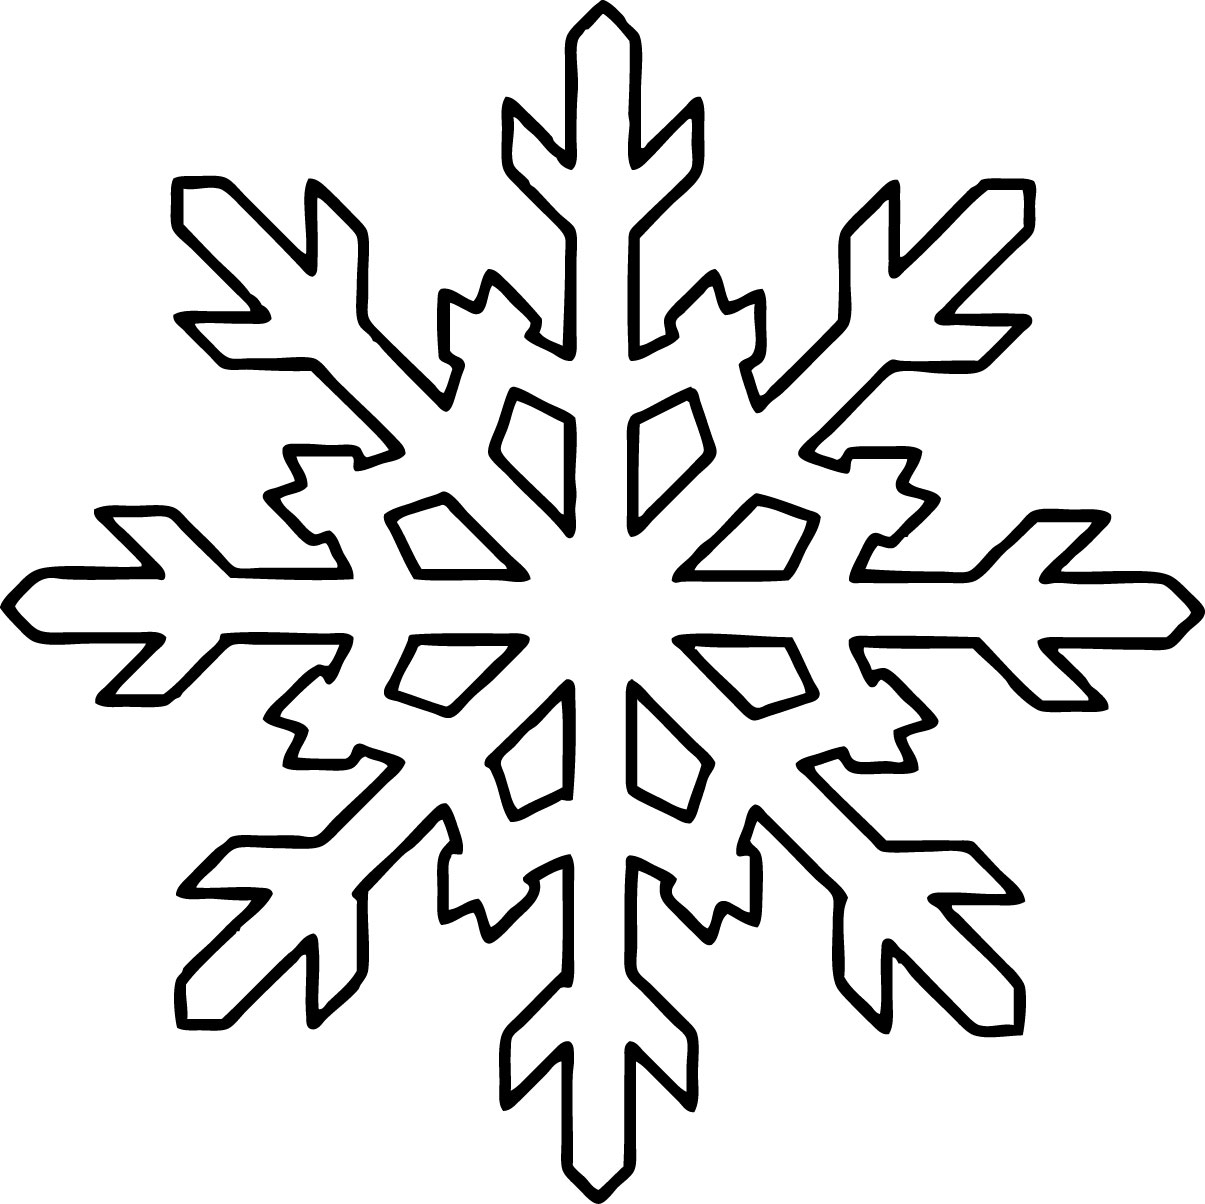 This is a photo of Nerdy Snow Flake Print Outs